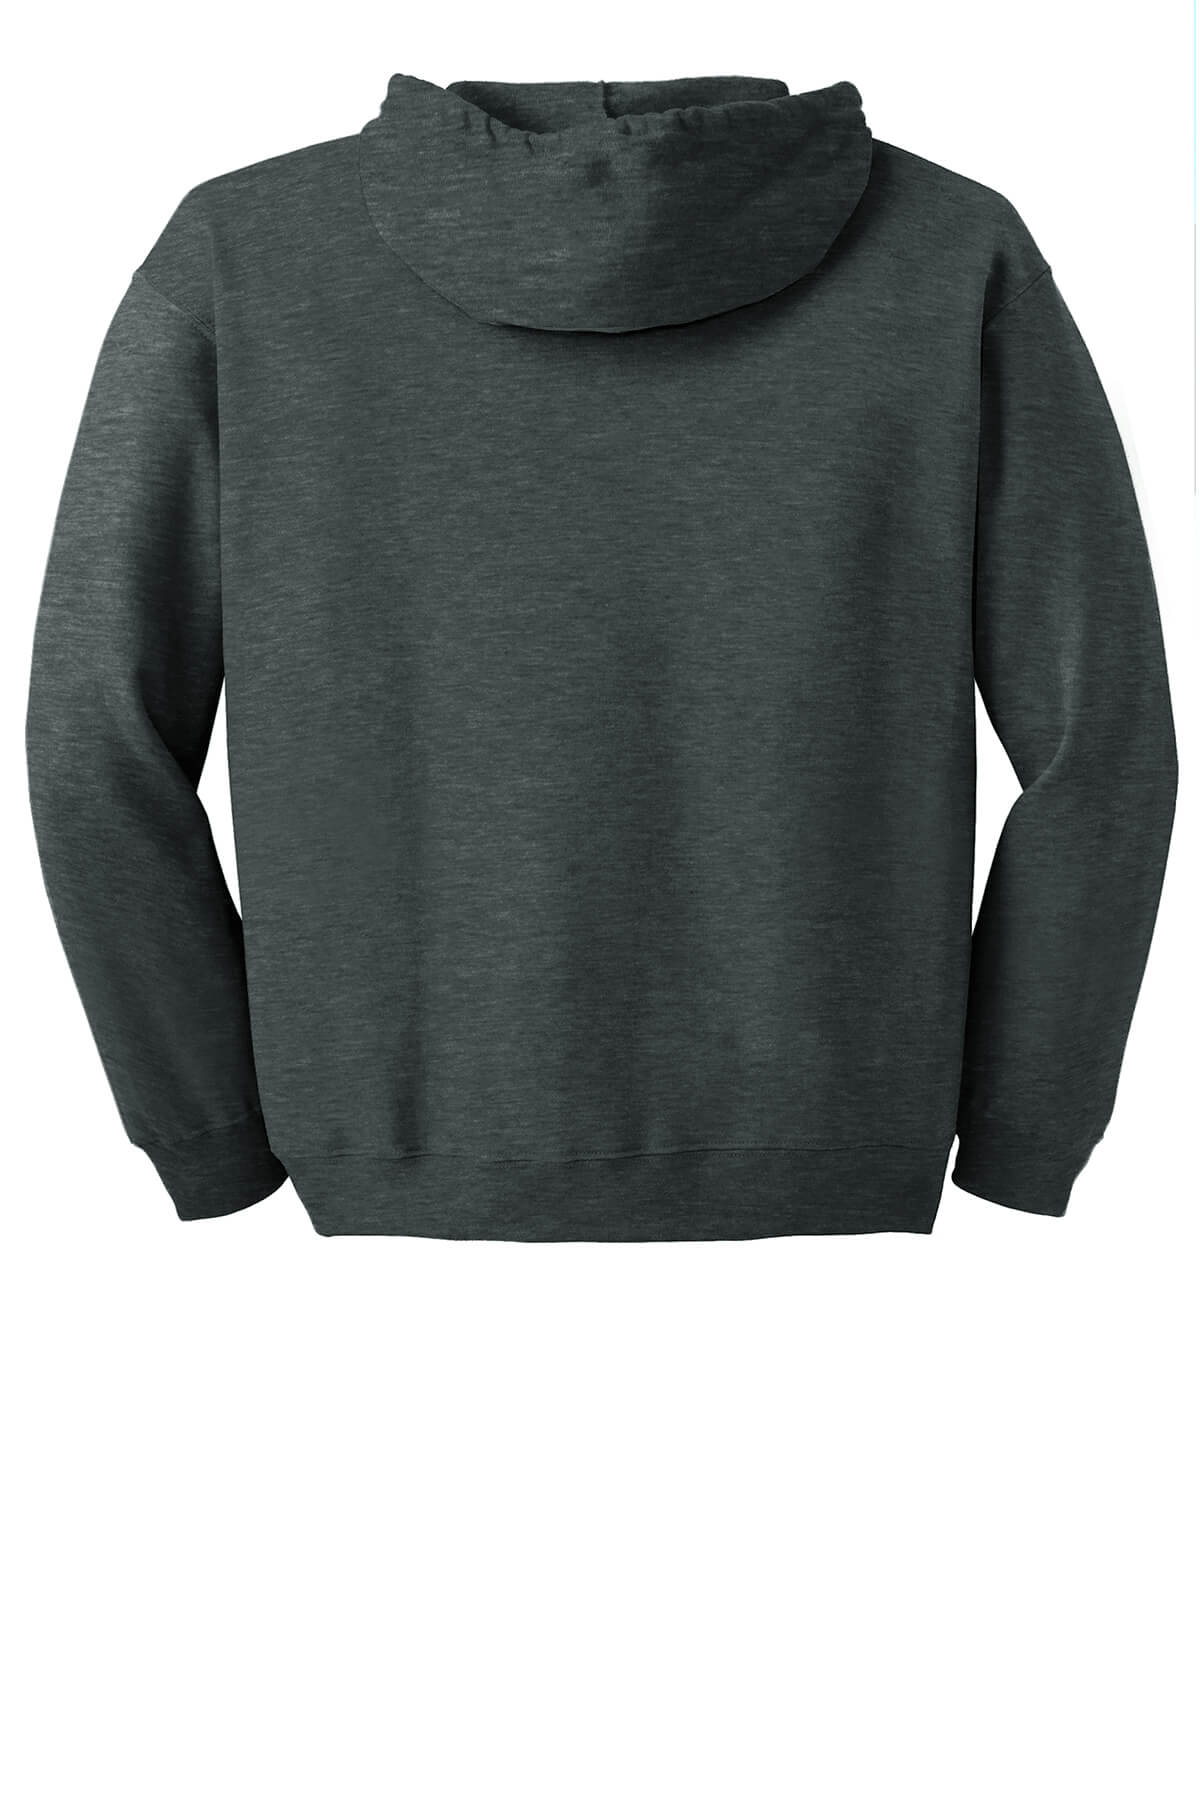 18600-dark-heather-grey-4